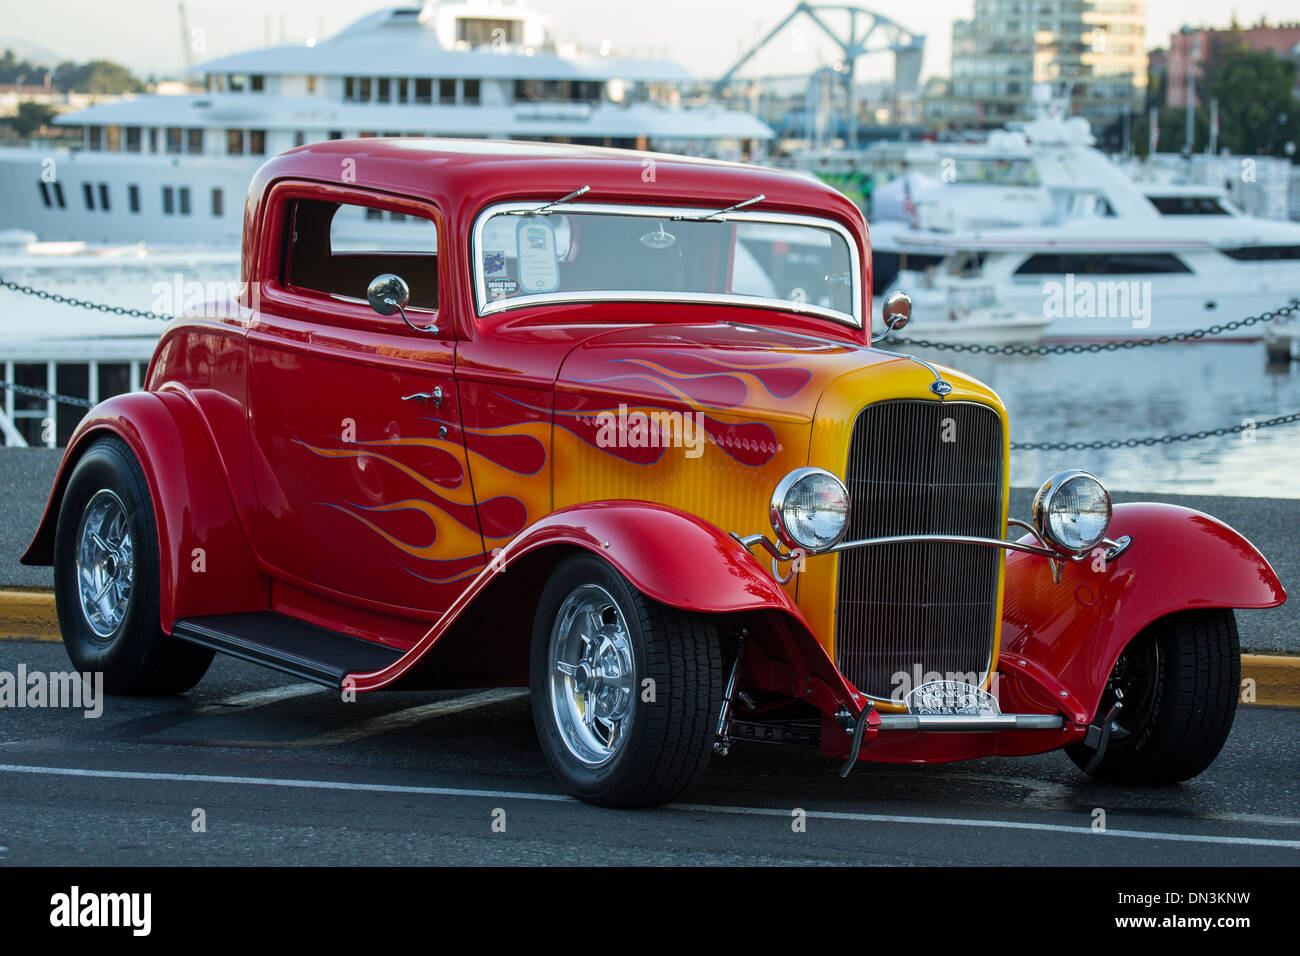 Ford Coupe Stock Photos & Ford Coupe Stock Images - Alamy